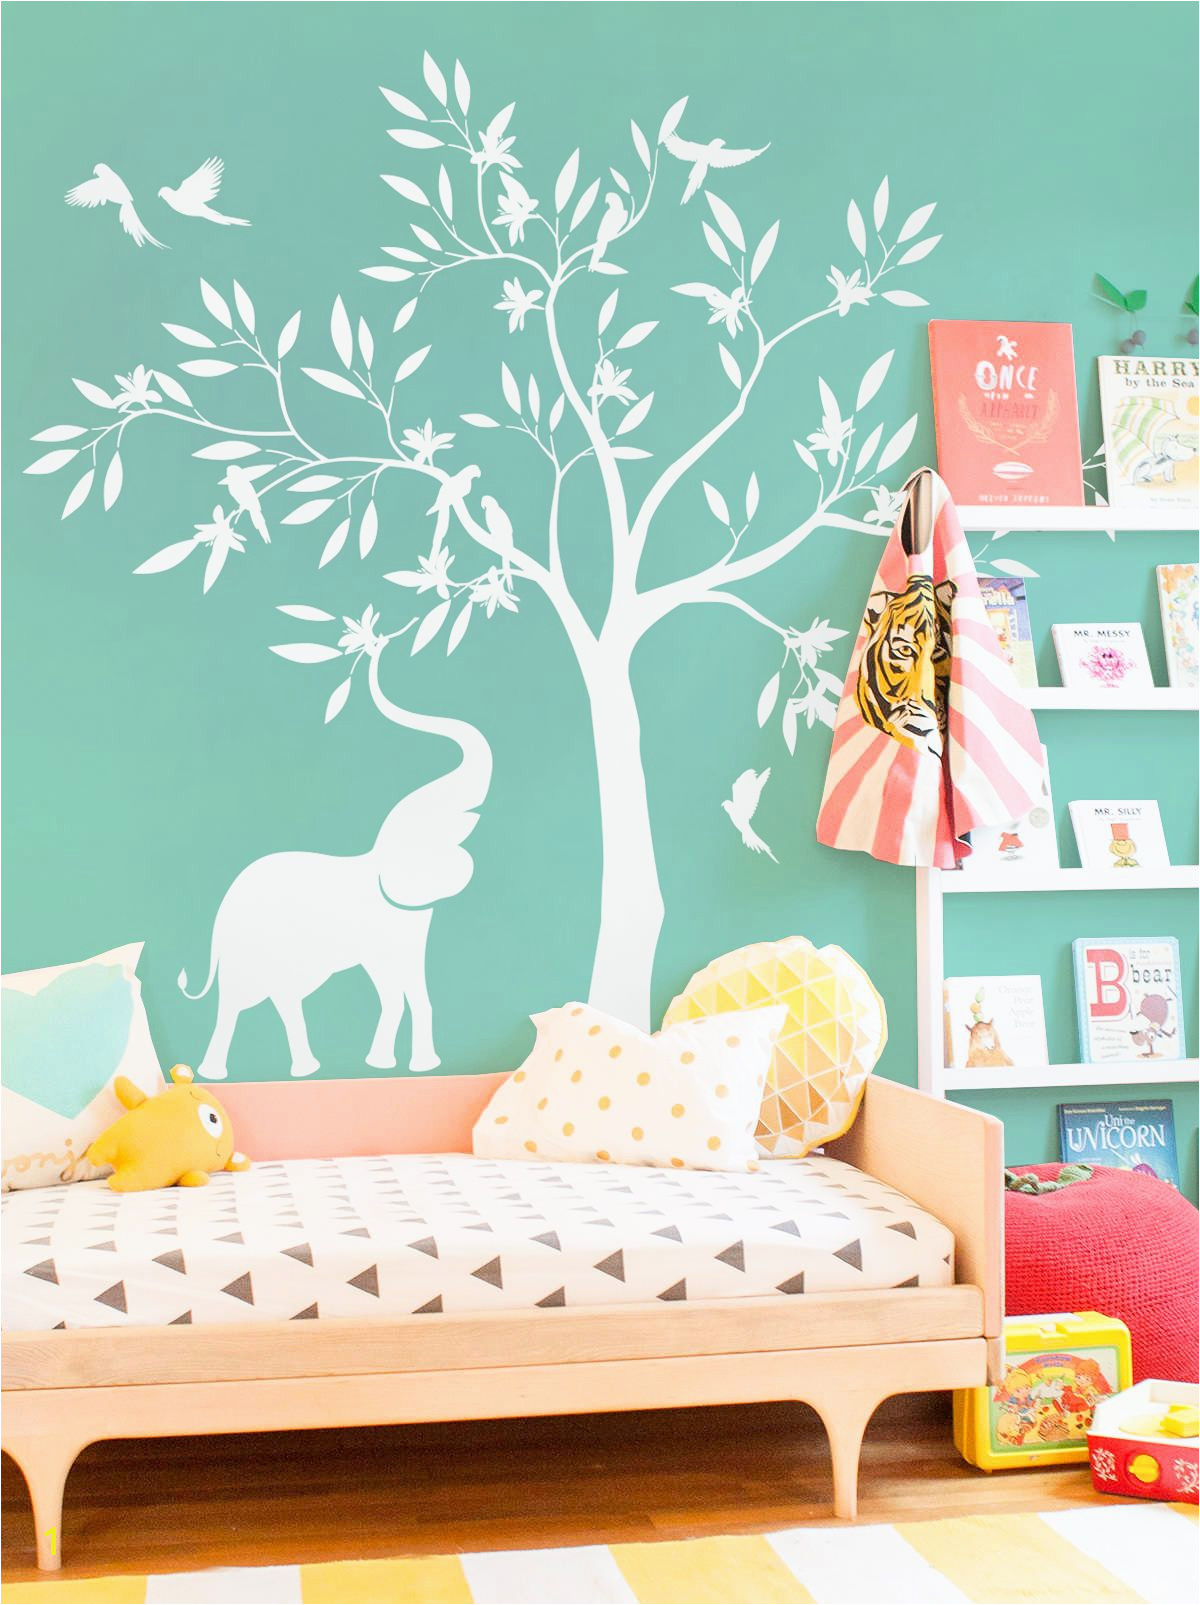 Elegant white tree wall decal White elephant elephant birds tree white tree fancy DIY room art nursery babyshower